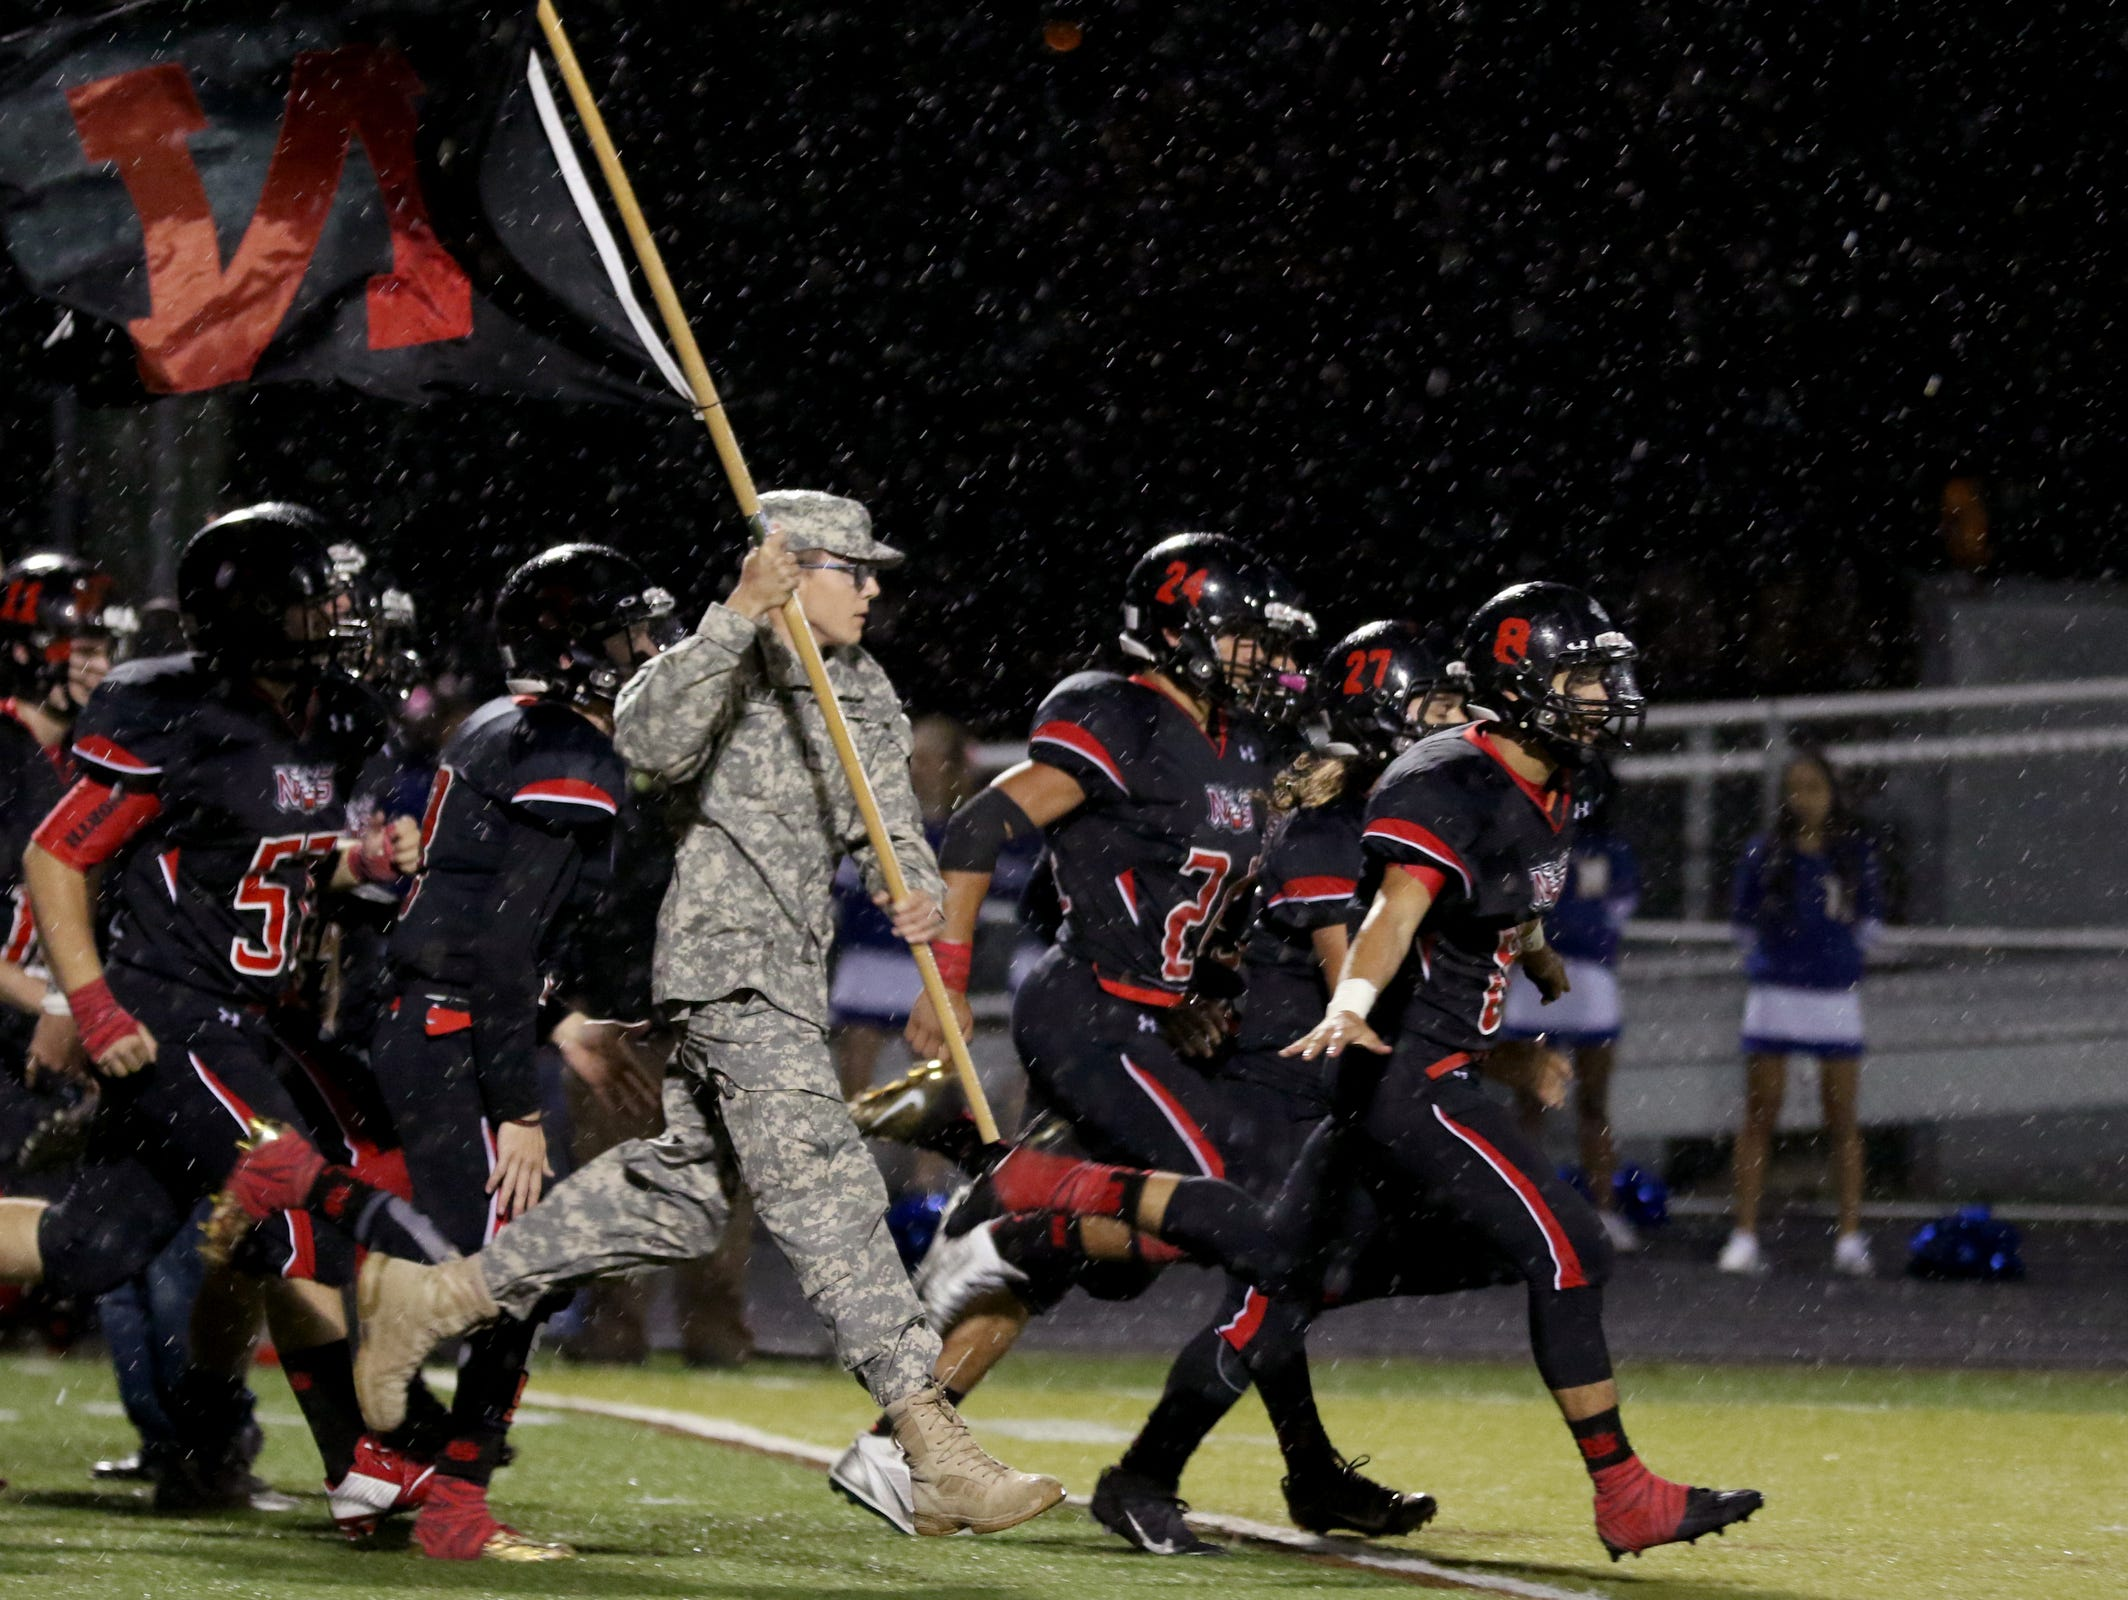 North Salem's football team takes the field before the McKay vs. North Salem football game at North Salem High School on Friday, Oct. 21, 2016.